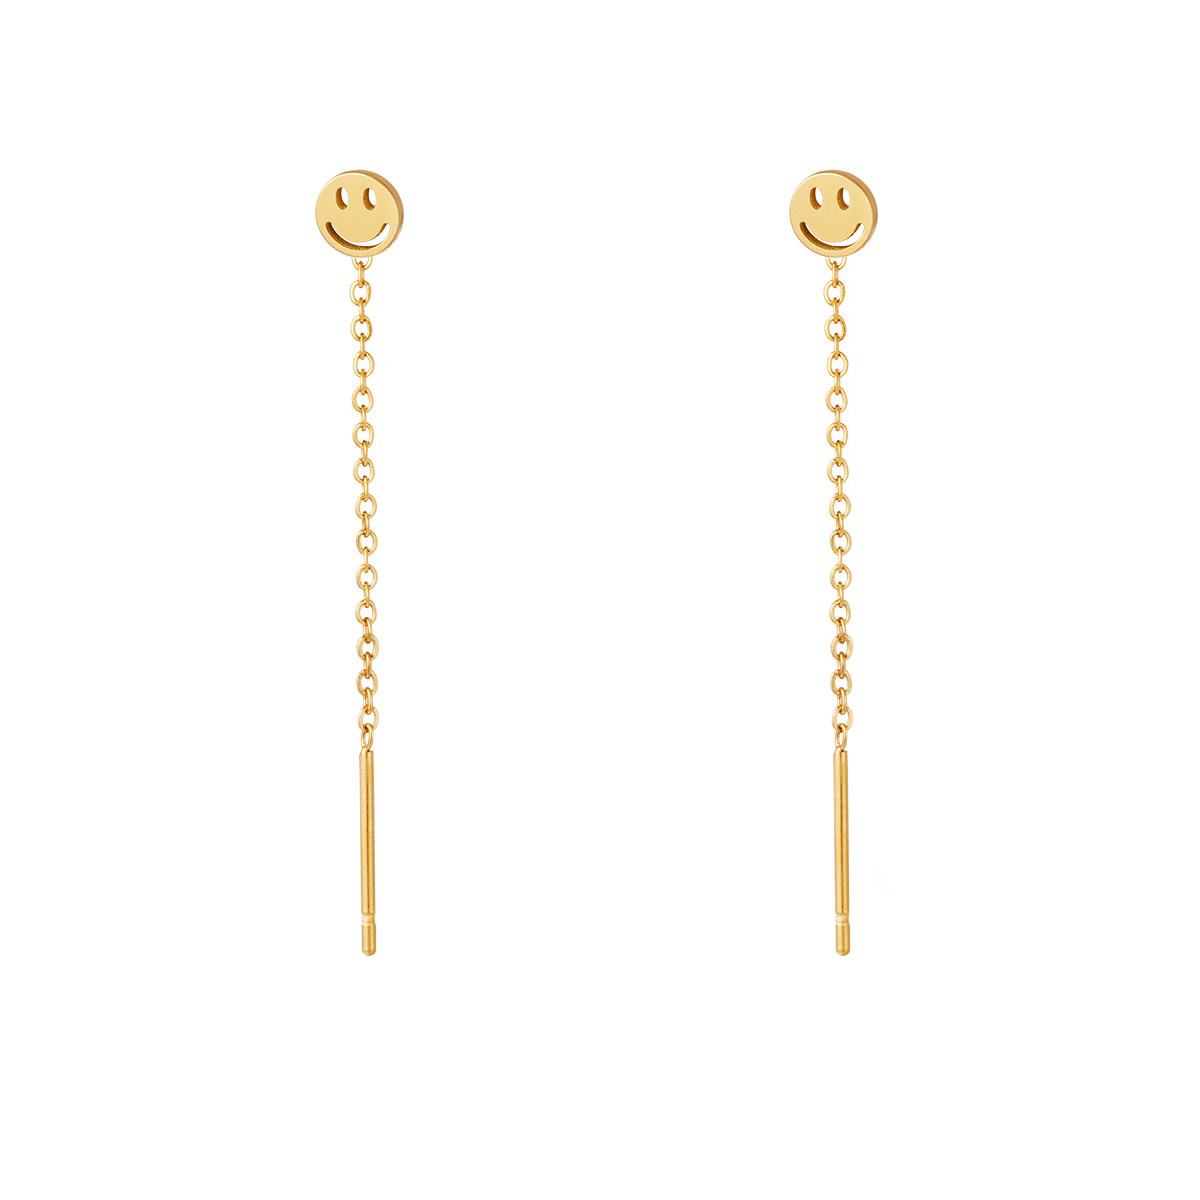 With love Earrings smiley gold